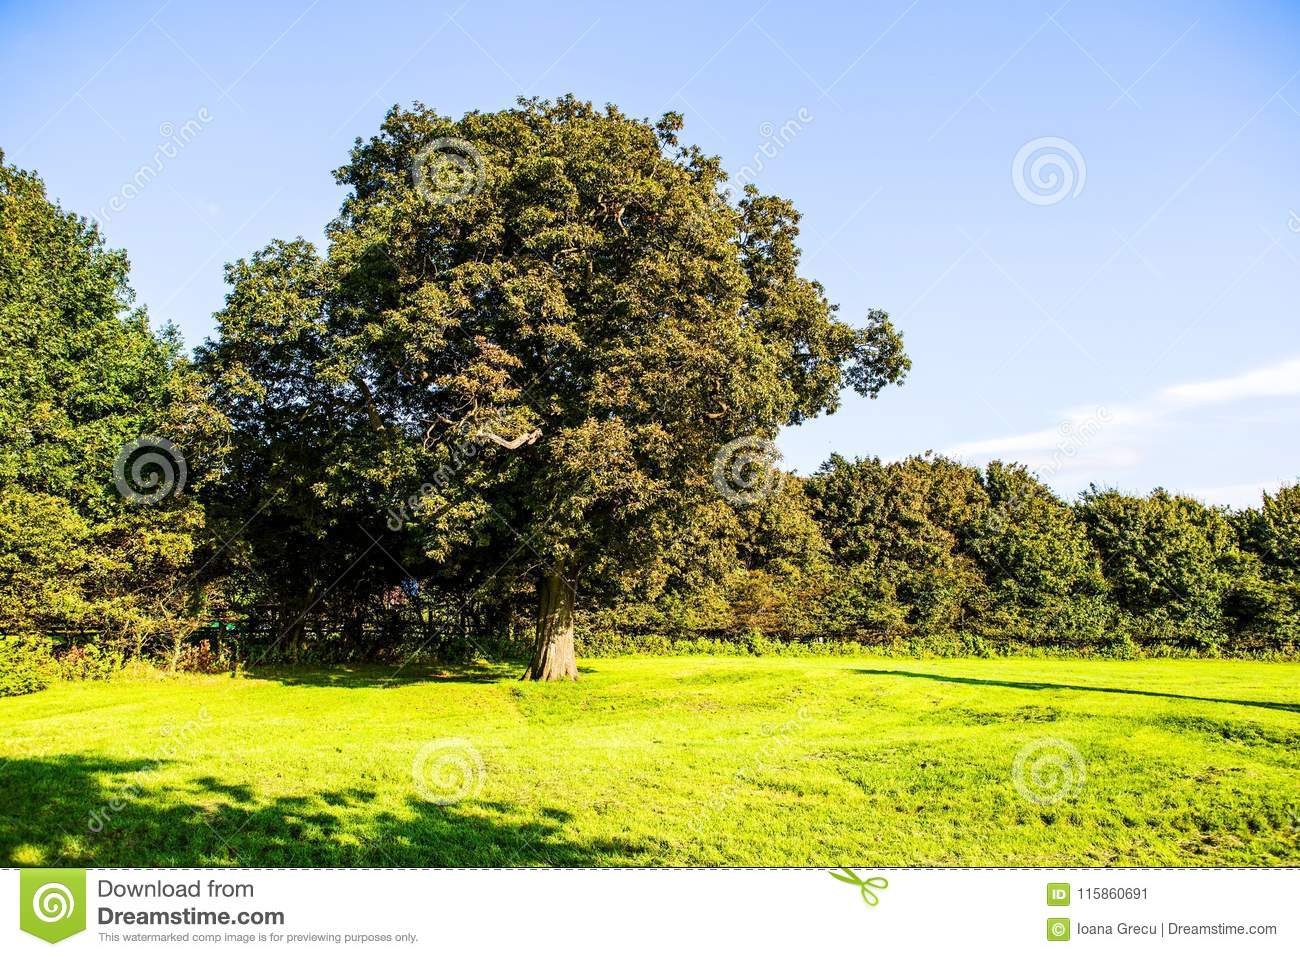 Green lawn and old trees at Margam country park grounds, Whales